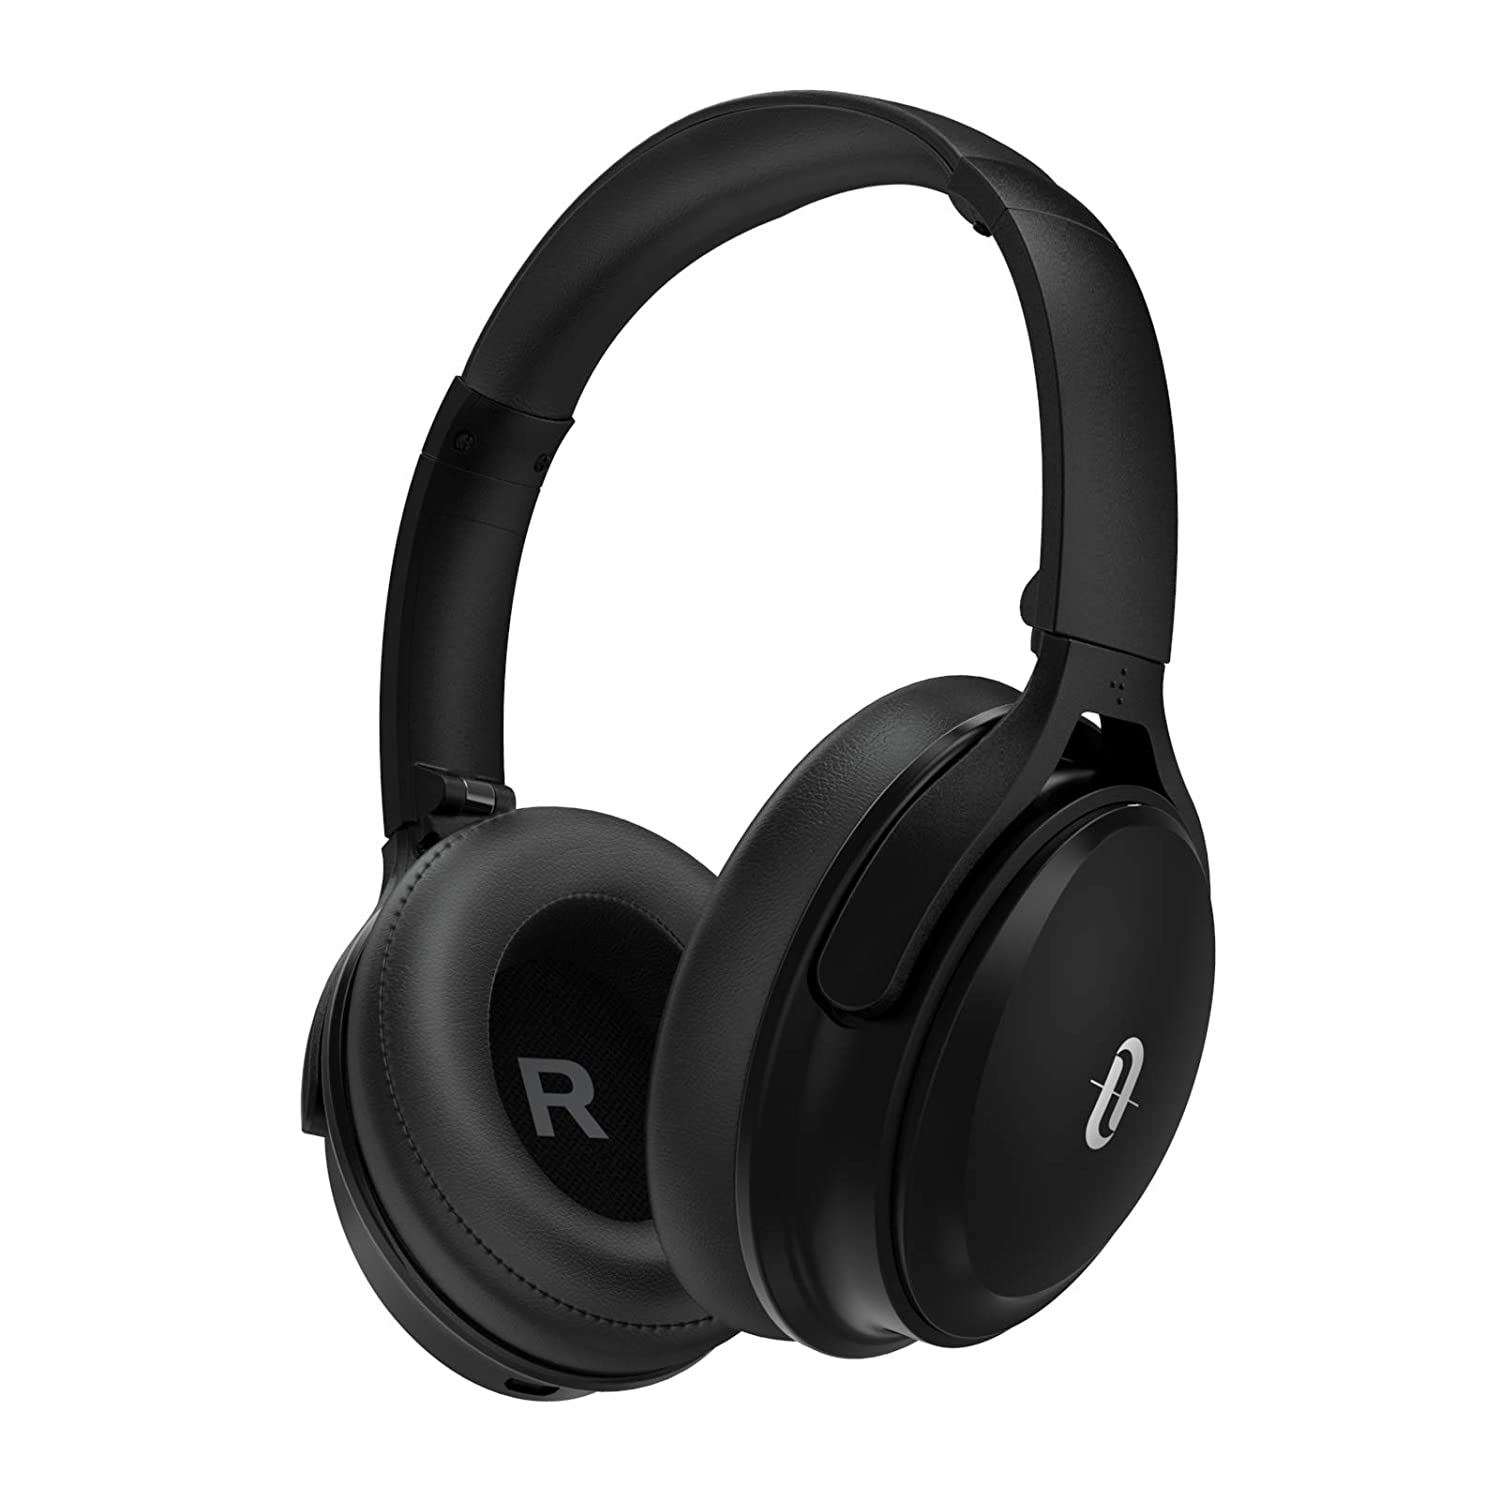 TaoTronics Active Noise Cancelling Headphones Upgraded 45H Playtime Bluetooth Headphones Over Ear Headphones Wireless Headphones High Clarity Sound for TV Cellphone